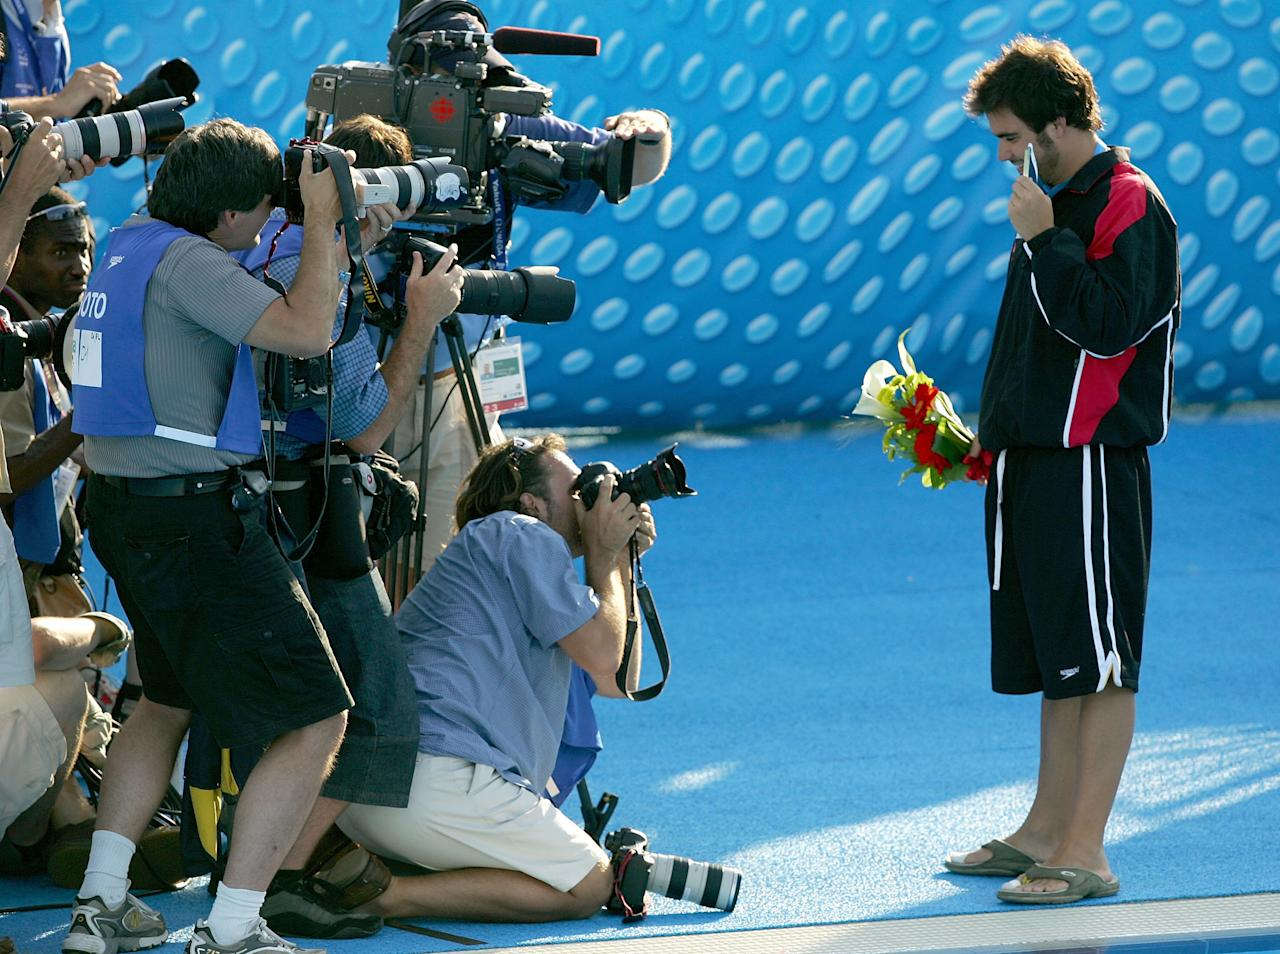 MONTREAL - JULY 19: Alexandre Despatie of Canada poses with his gold medal in the three meter diving final on the podium during the XI FINA World Championships at the Parc Jean-Drapeau on July 19, 2005 in Montreal, Quebec, Canada. (Photo by Al Bello/Getty Images)